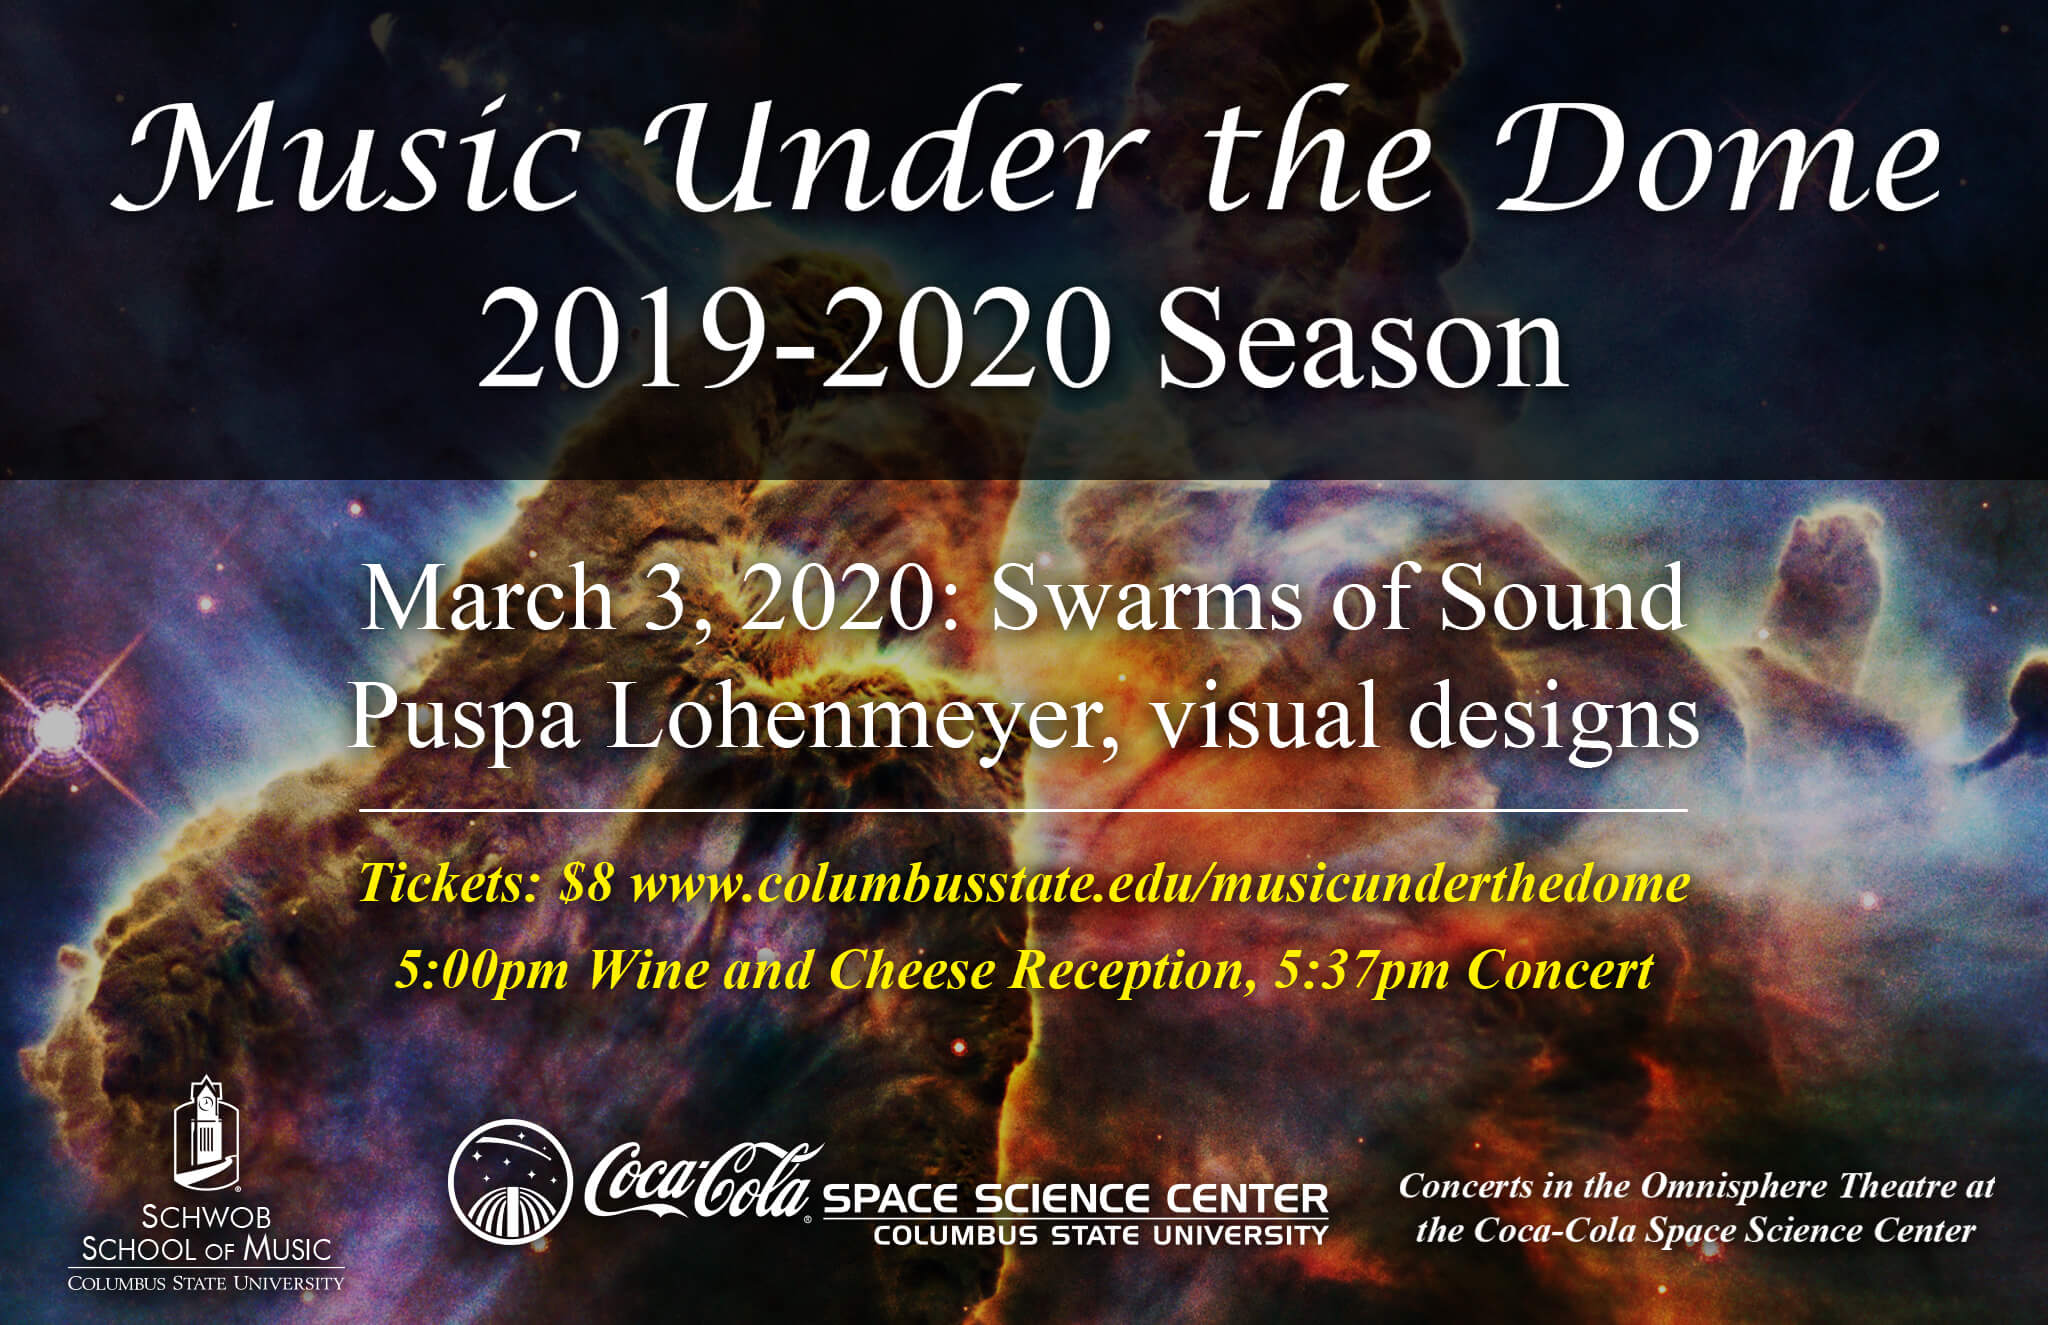 Music Under The Dome: Swarms of Sound